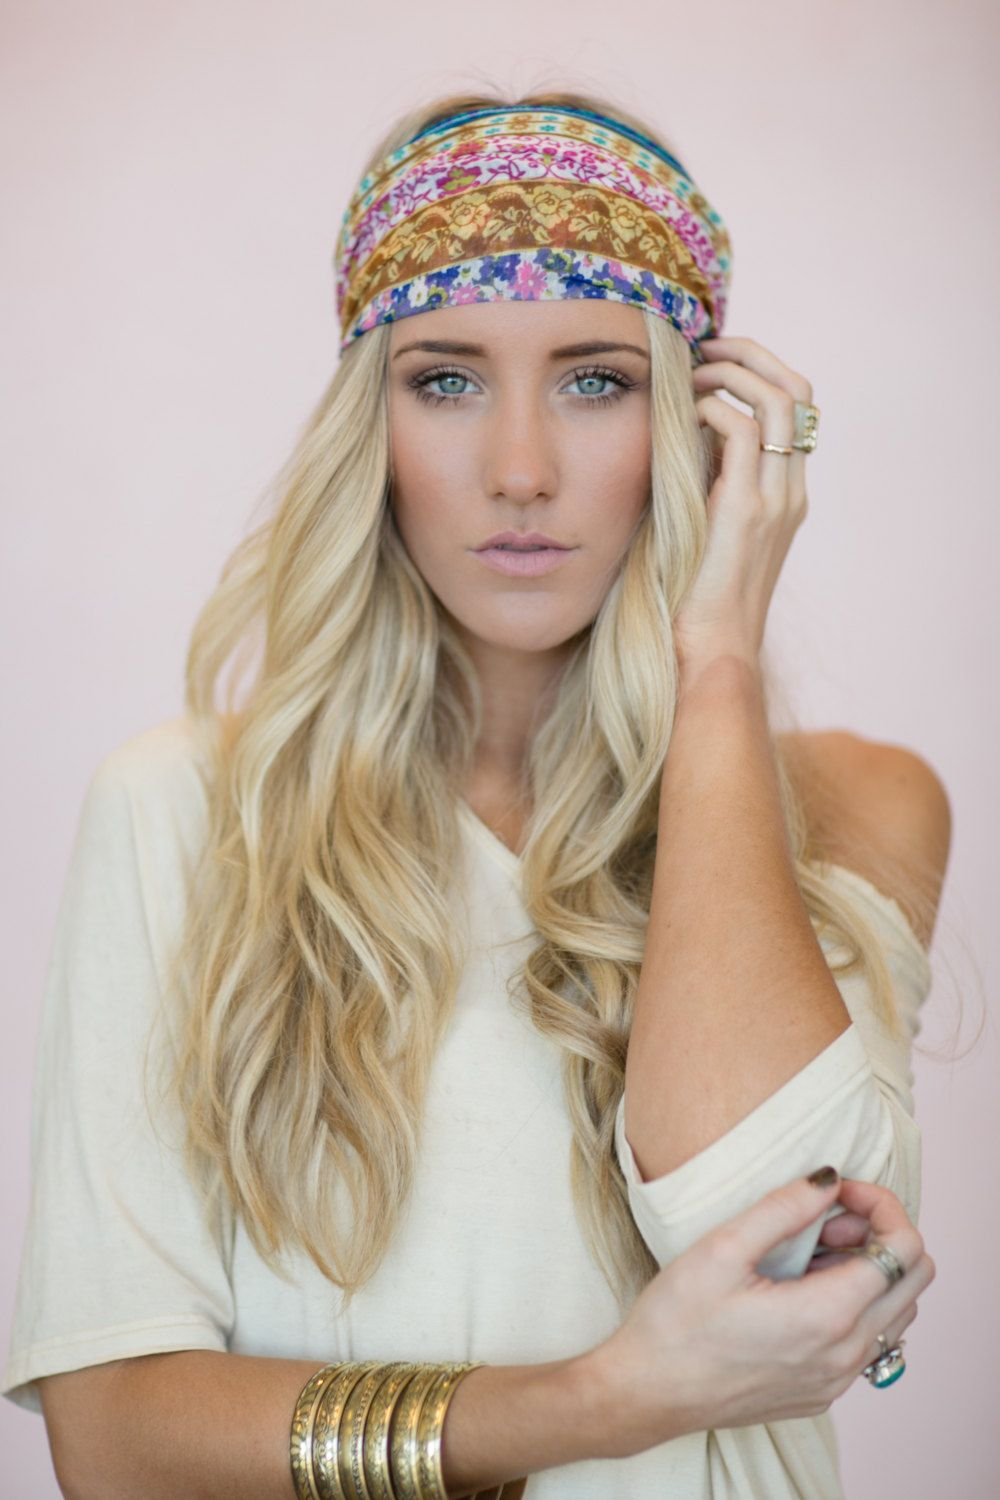 NEW Pack of 2 Blonde snag free headband bandeaux festivals prom fashion hippy kn